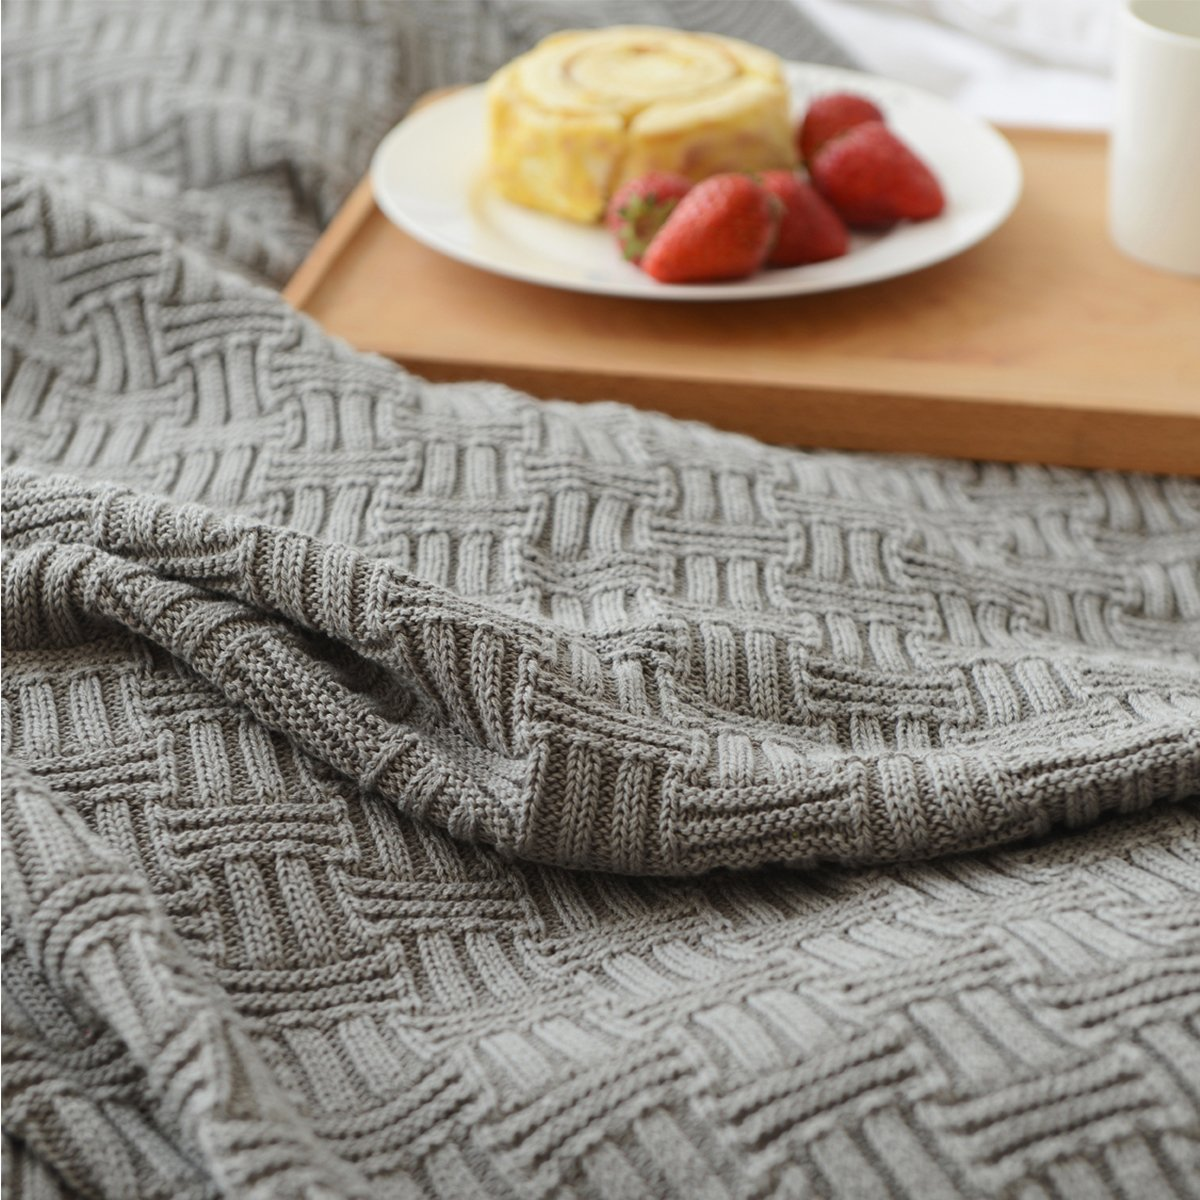 MYLUNE HOME 100% Cotton Stylish Knitted Throw Blanket for Watching TV or Nap on Chair,Sofa and Bed (180x200cm, gray)